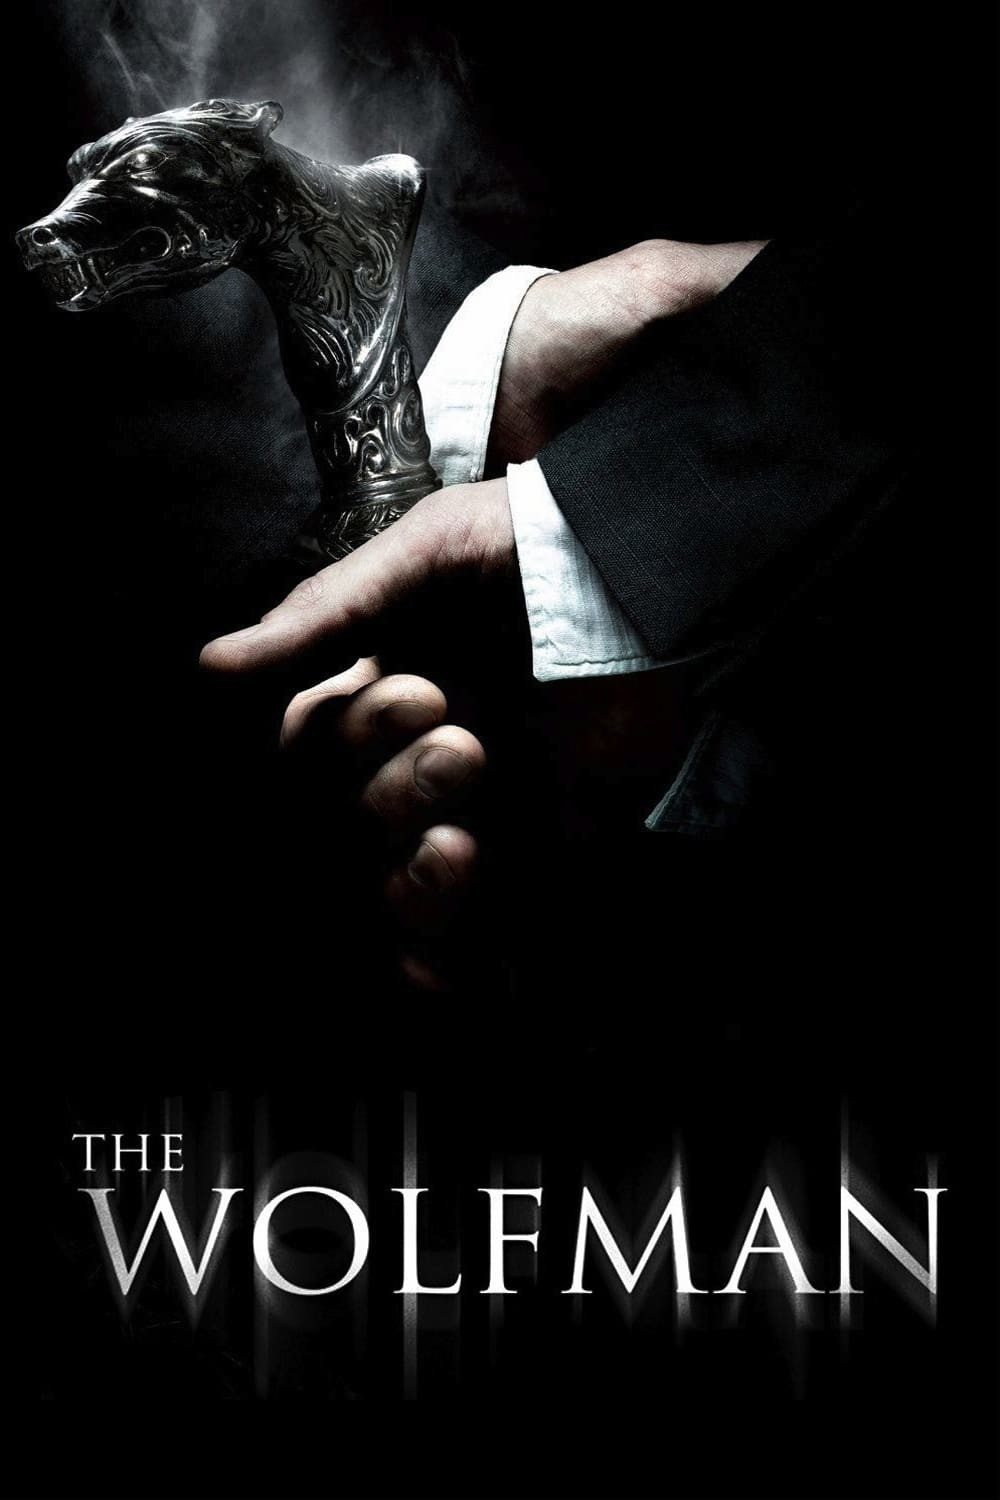 Watch The Wolfman (2010) Free Online